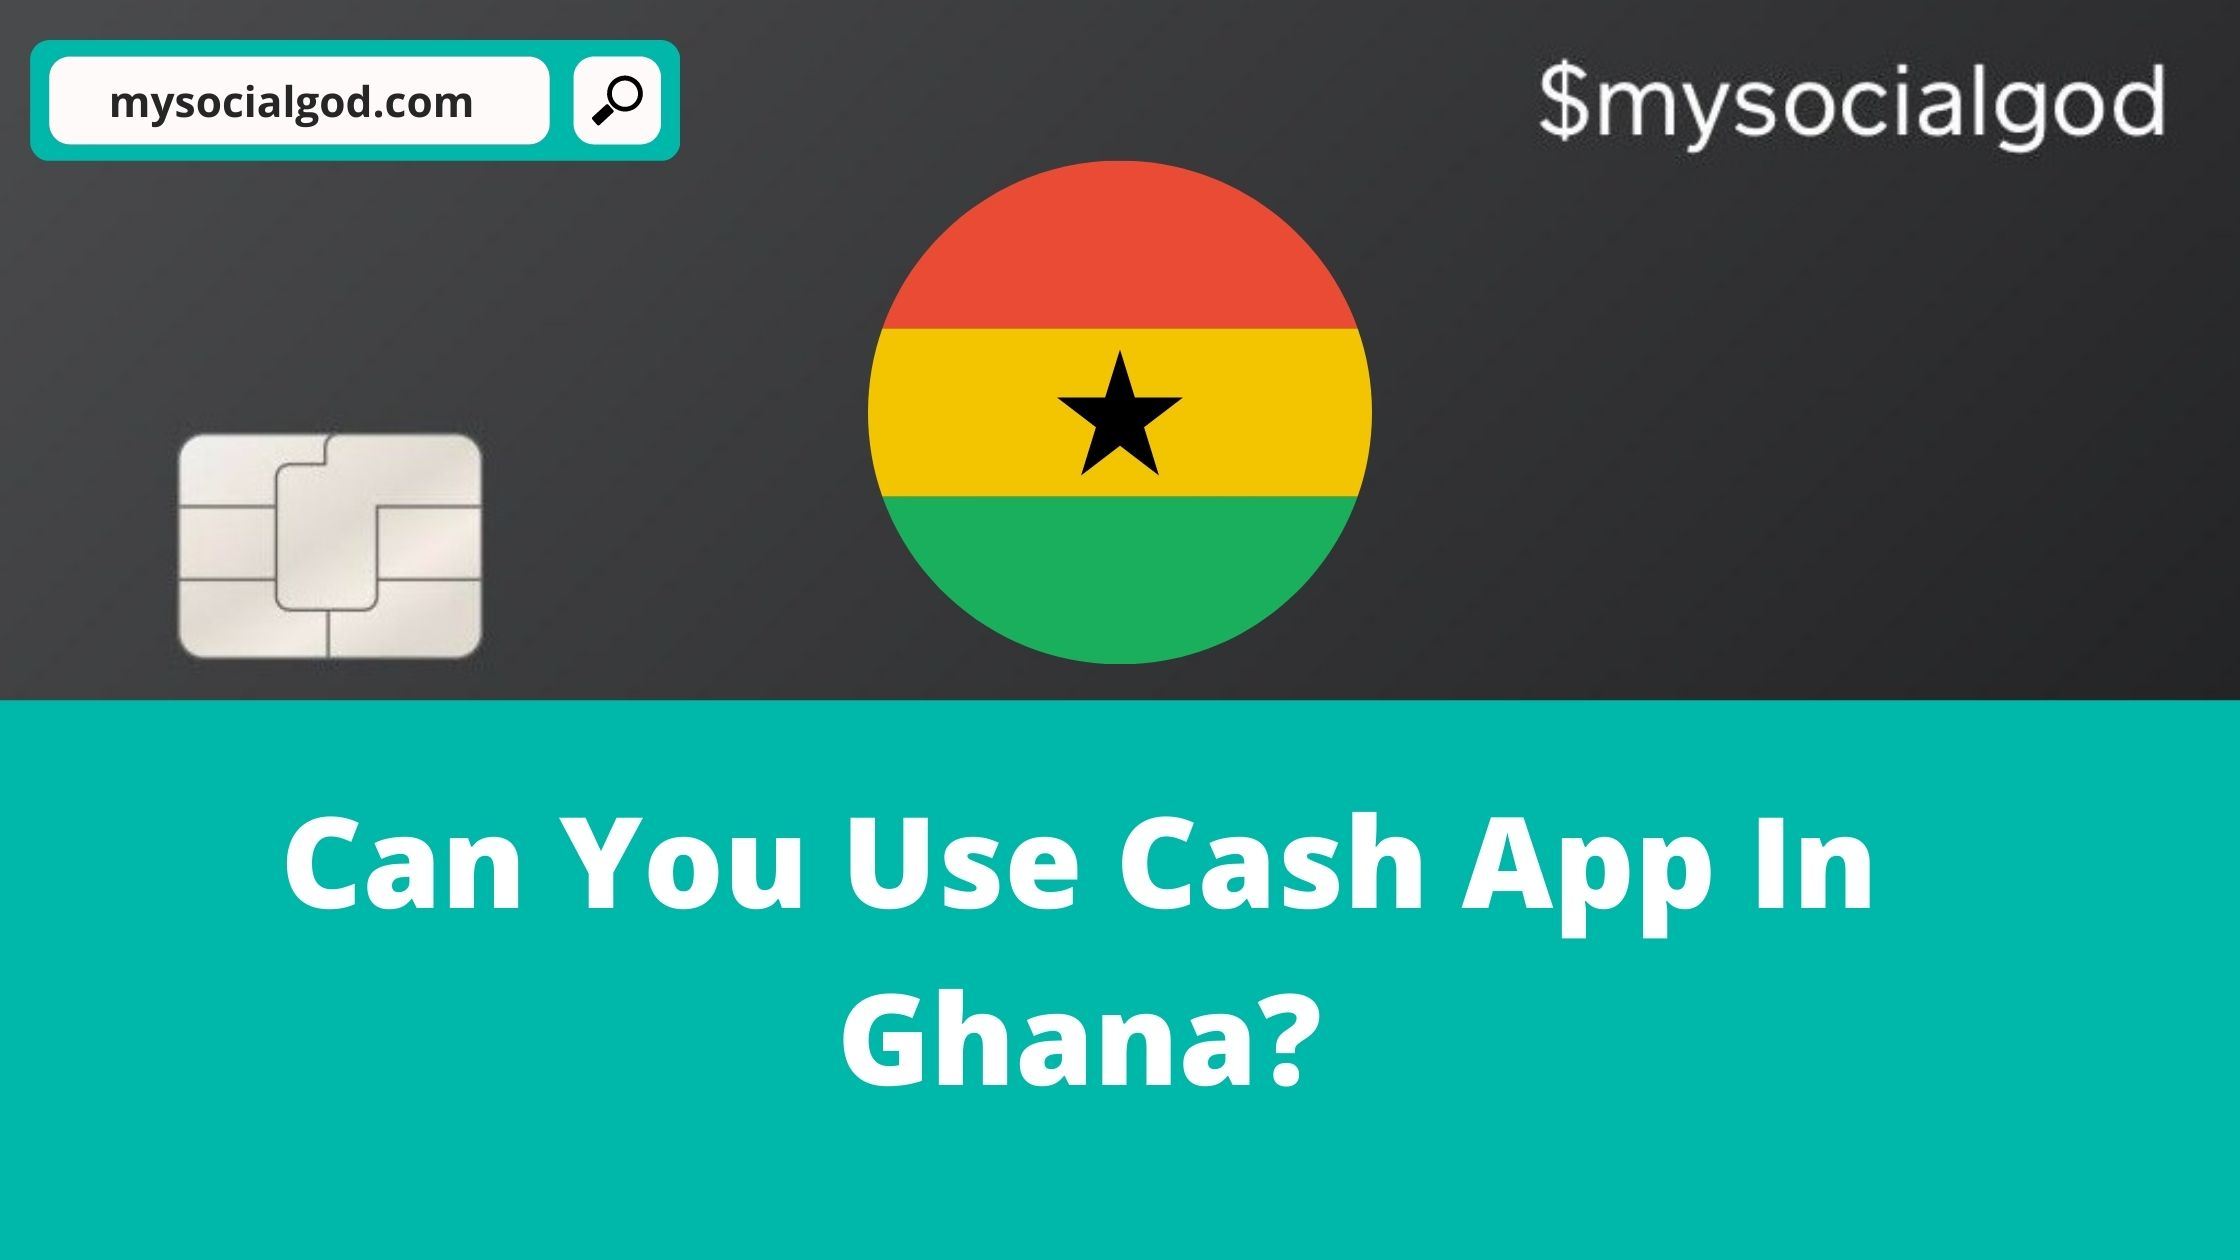 Can You Use Cash App In Ghana